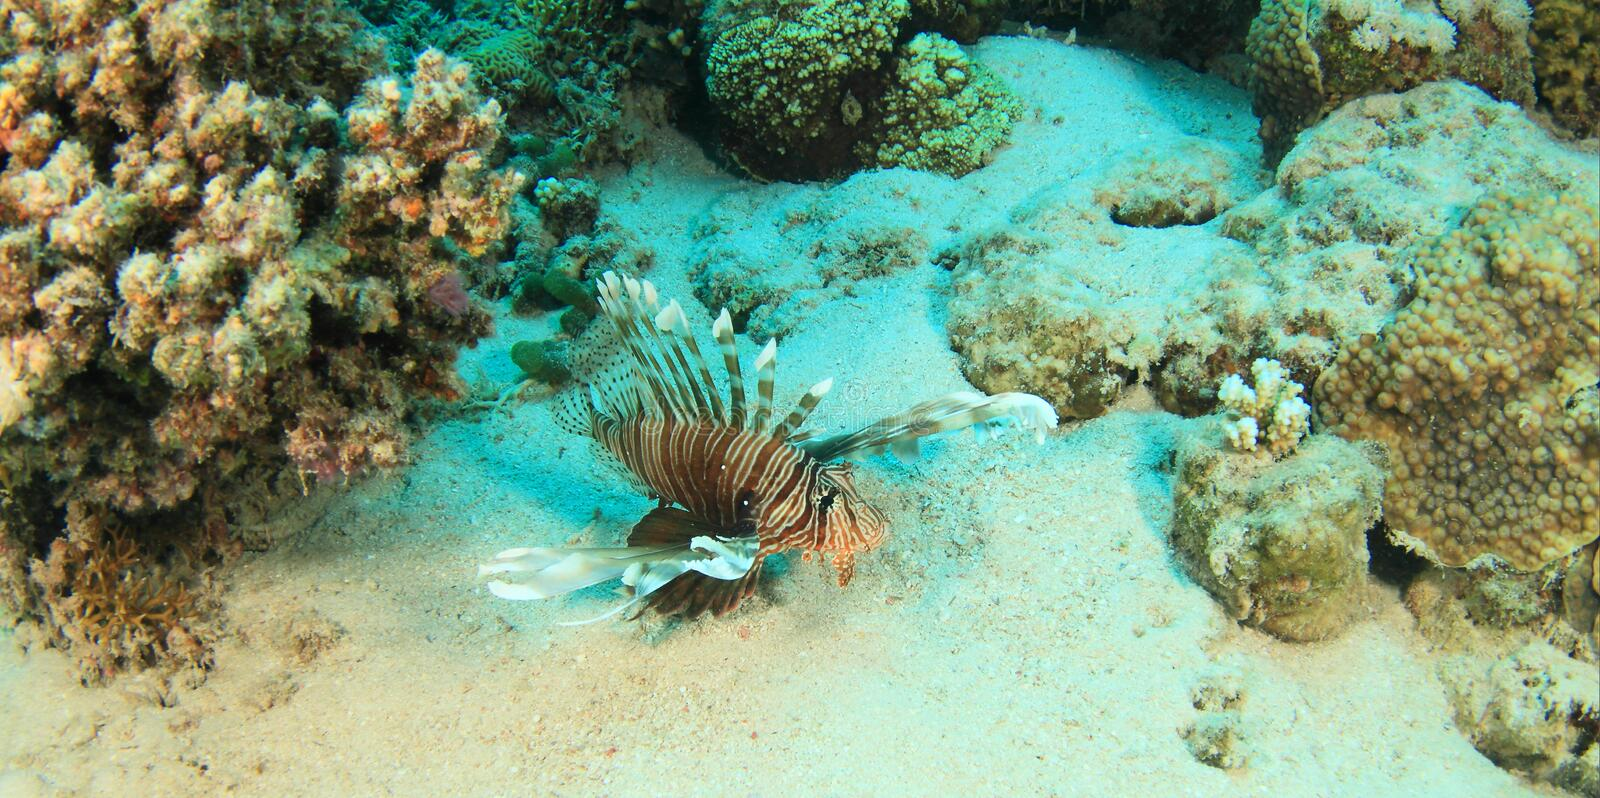 African lionfish royalty free stock image